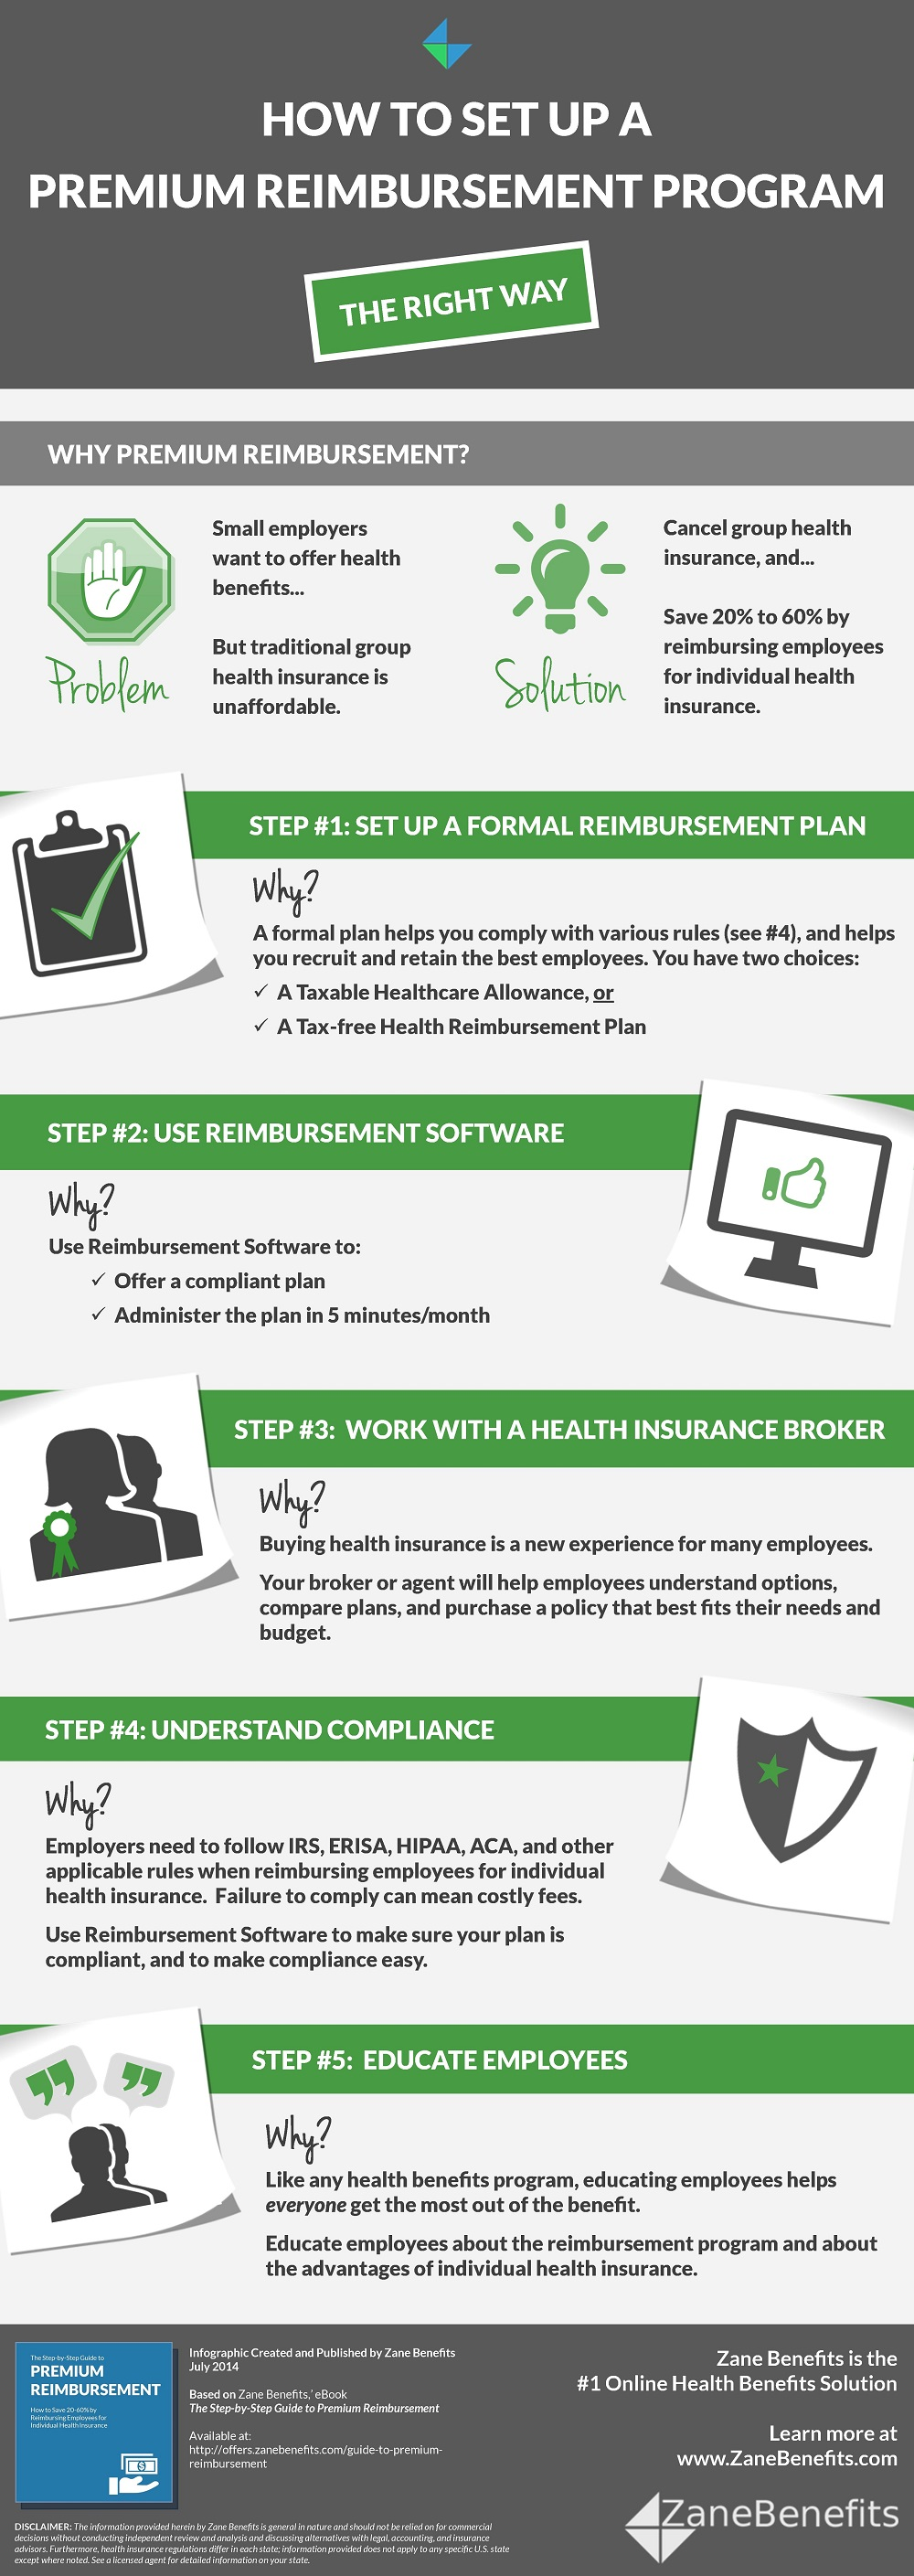 [Infographic] How to Set Up a Premium Reimbursement Program... The Right Way